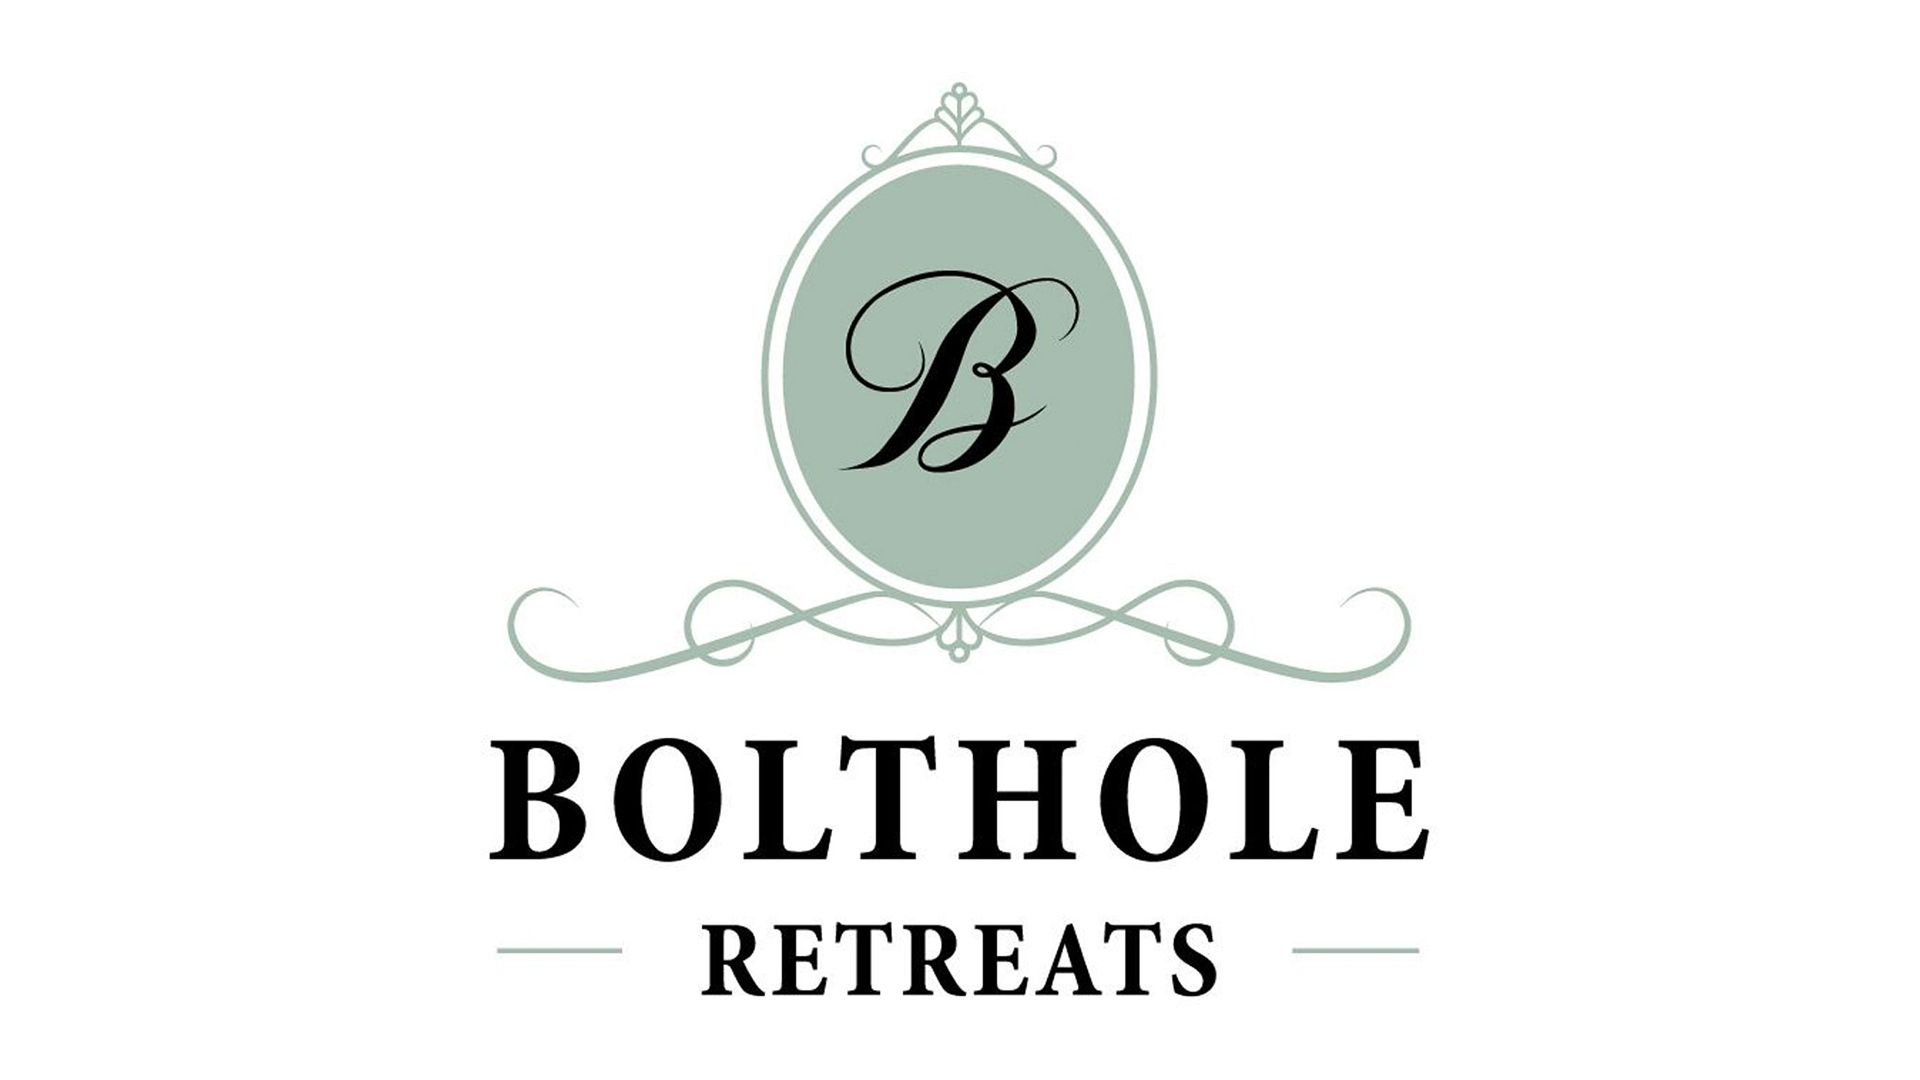 Bolthole Retreats